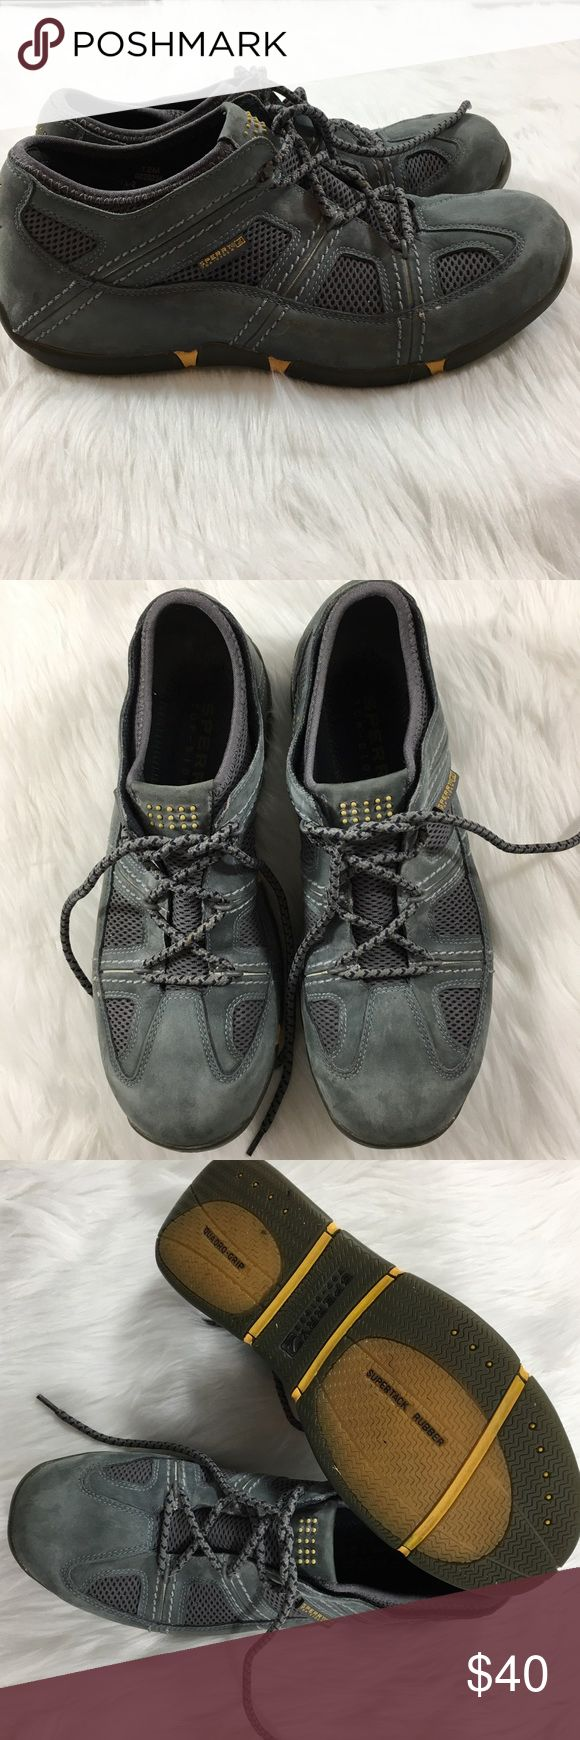 Men's Leather Sperry Shoes Only worn once, these Sperry shoes are in near perfect condition! Very comfortable and great for busy days. Sperry Top-Sider Shoes Sneakers